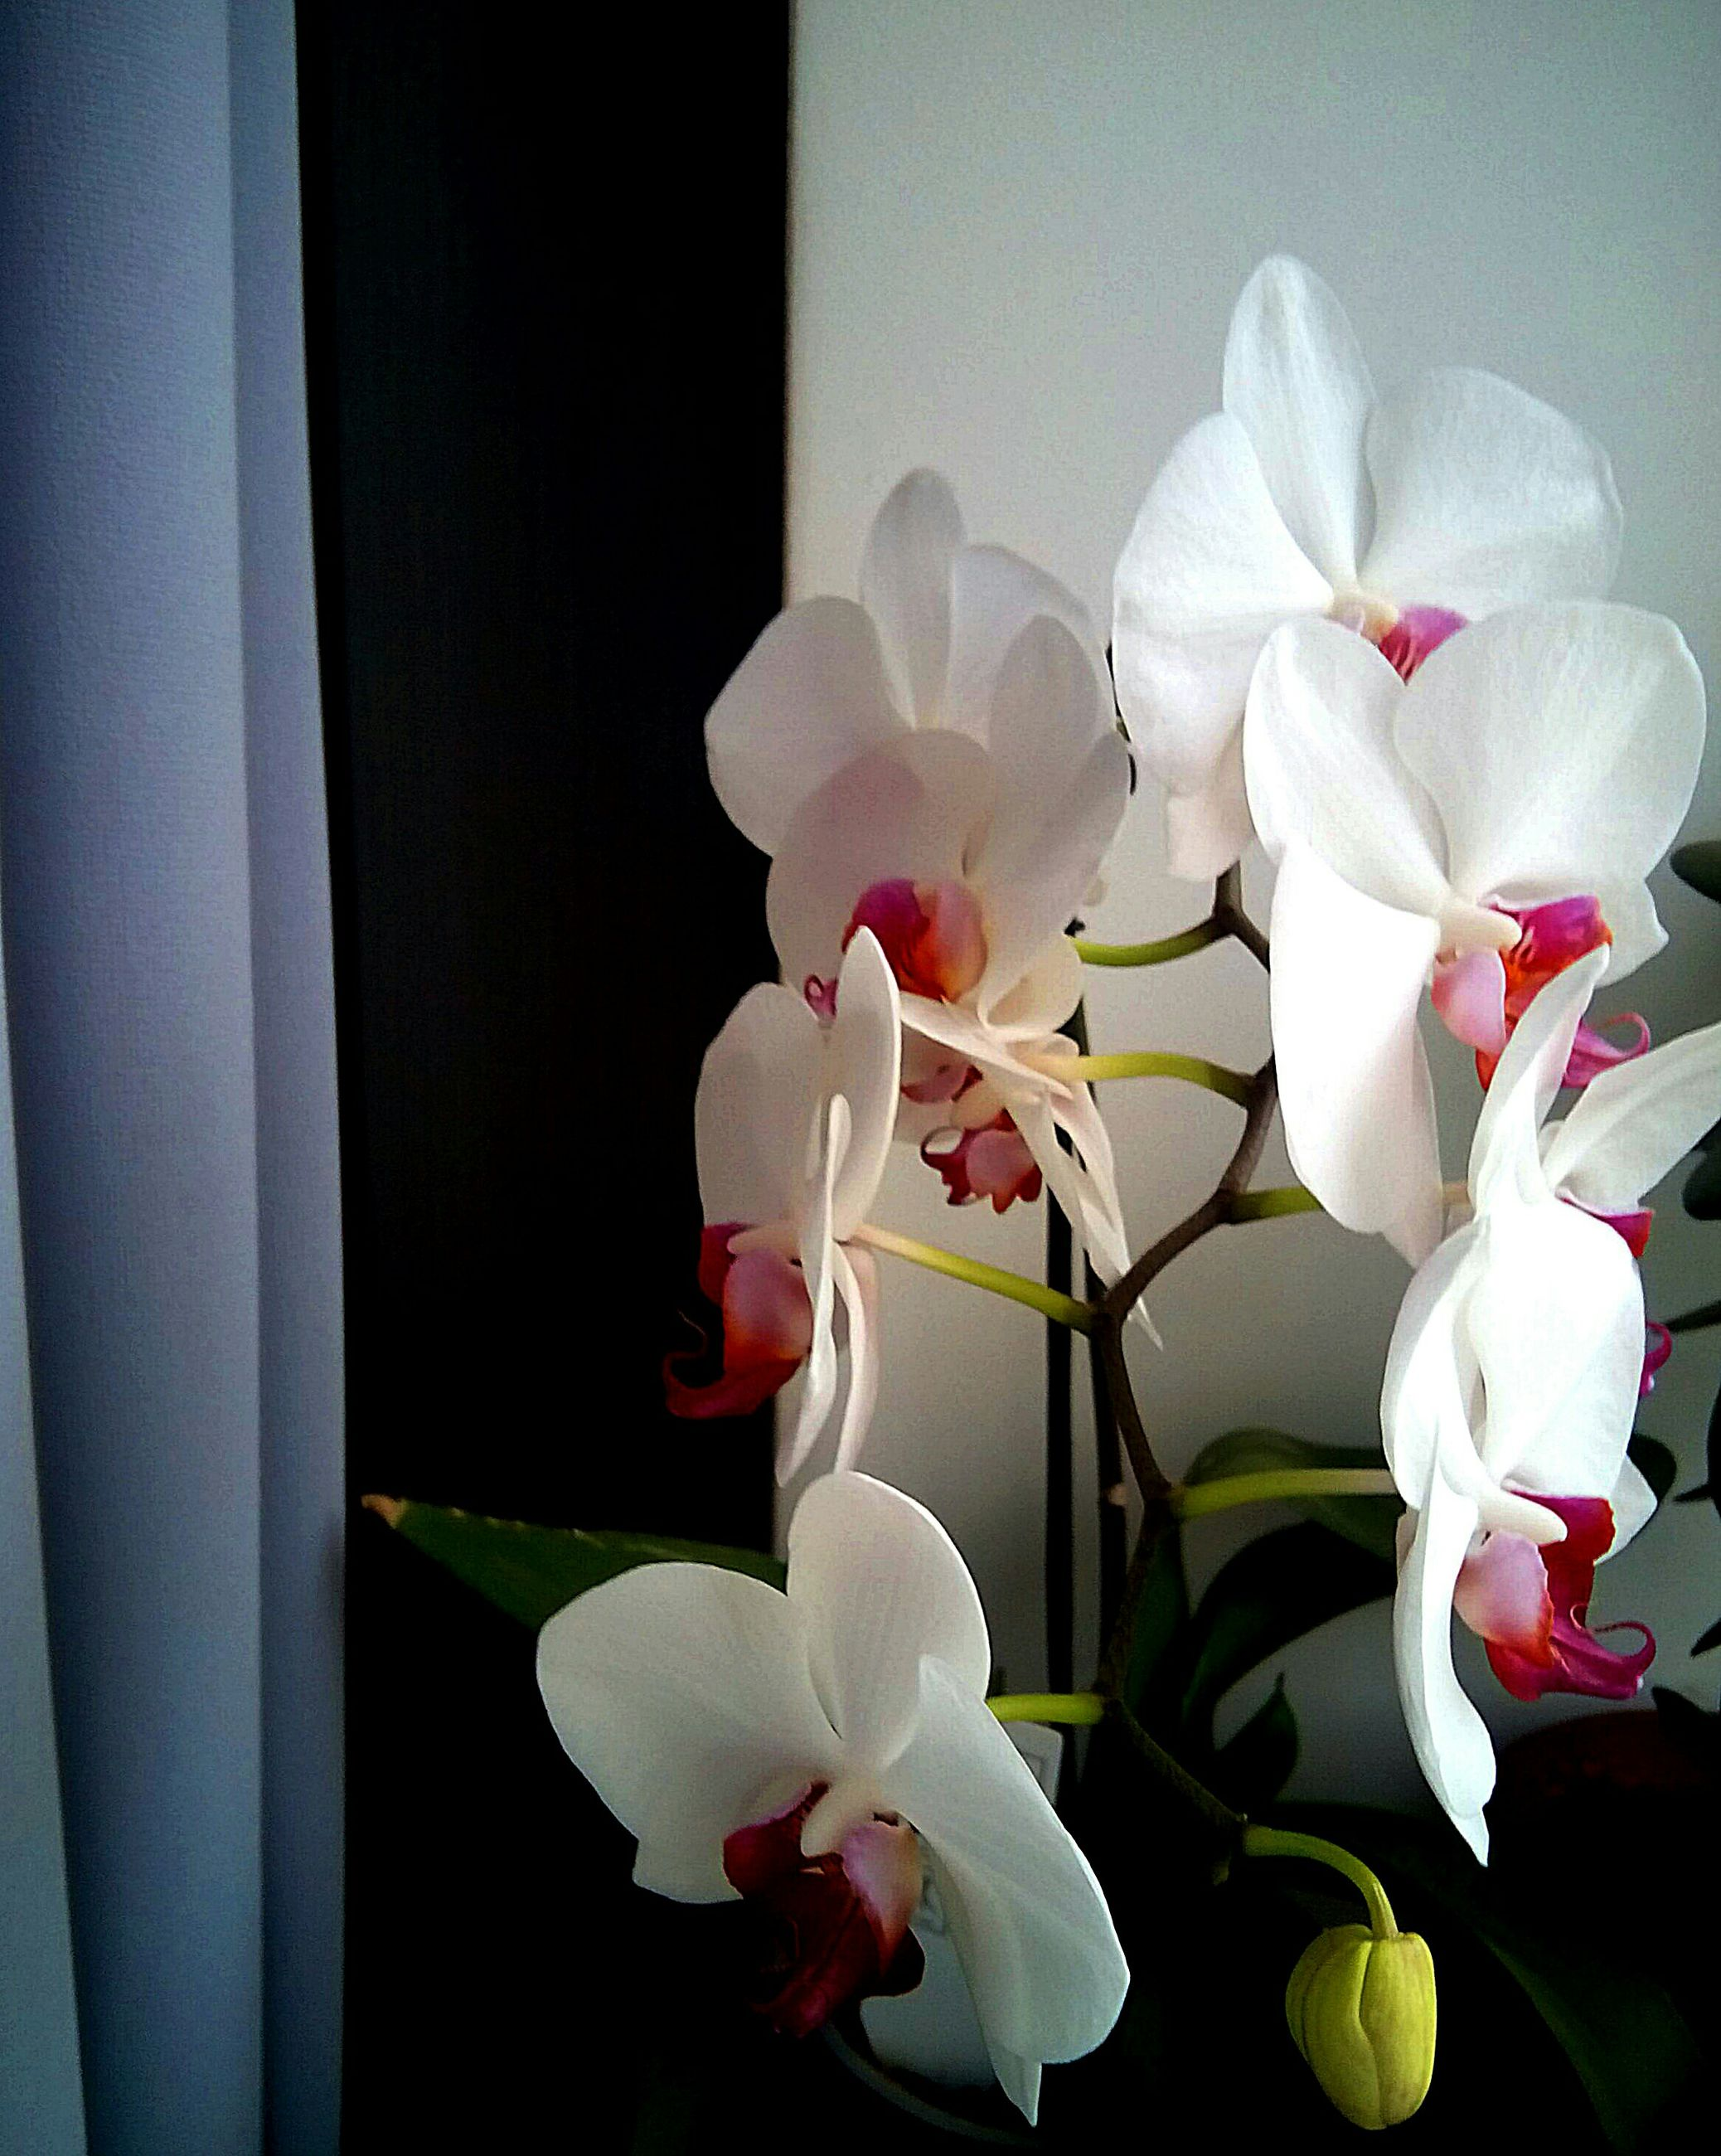 flower, petal, fragility, indoors, freshness, flower head, white color, growth, window, beauty in nature, vase, orchid, nature, plant, close-up, leaf, stem, blooming, home interior, focus on foreground